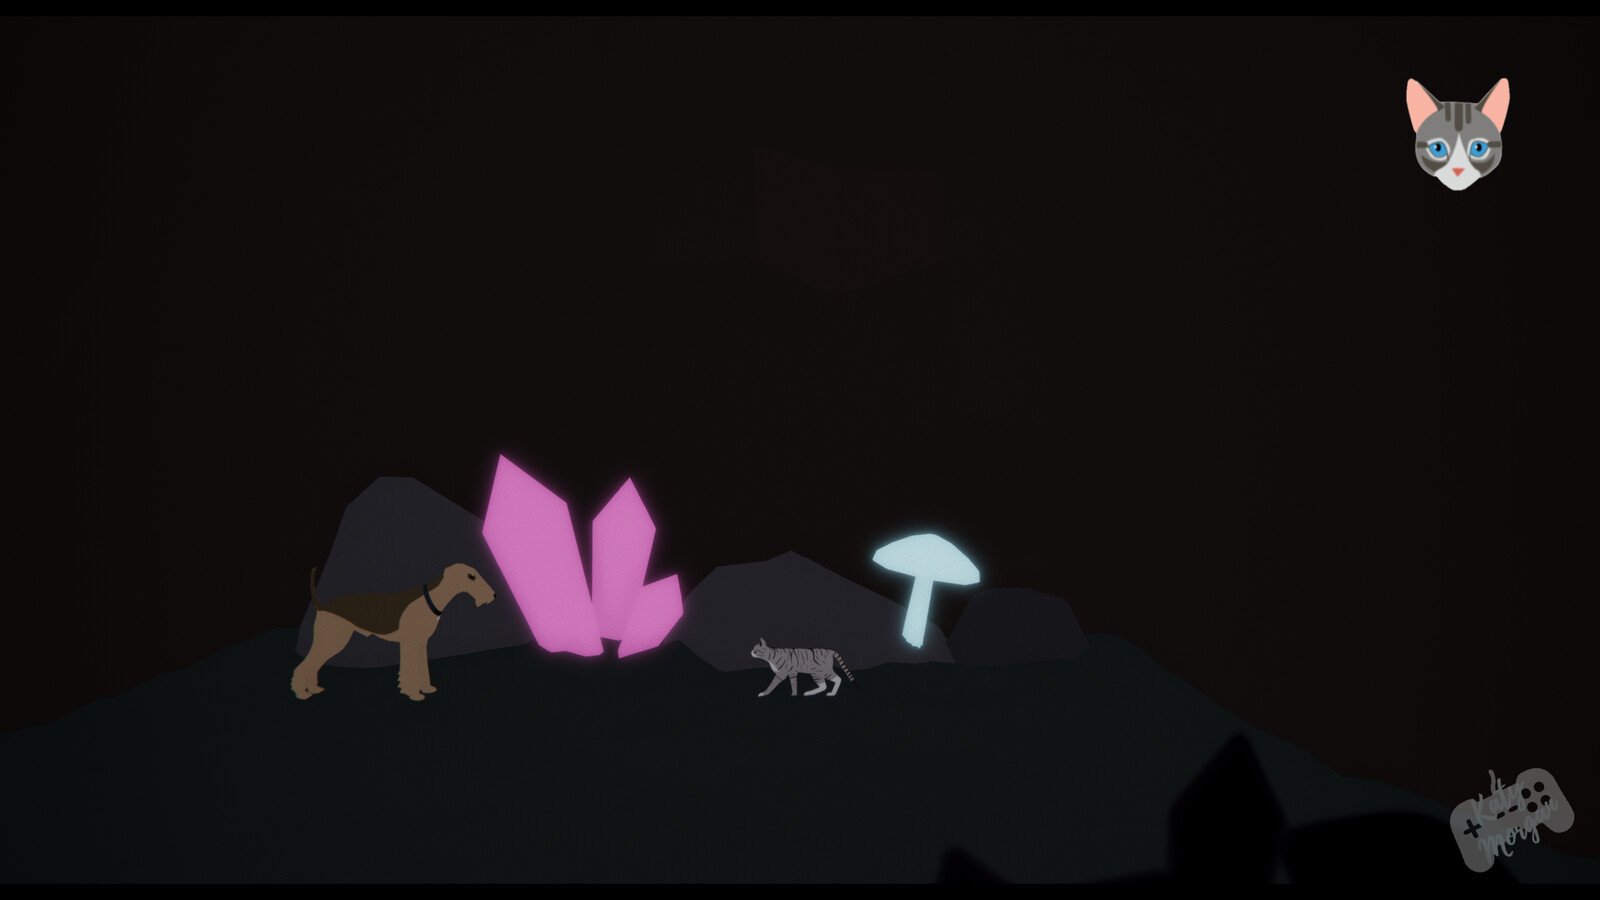 Cave assets. All assets here are 3D made by myself in Maya.